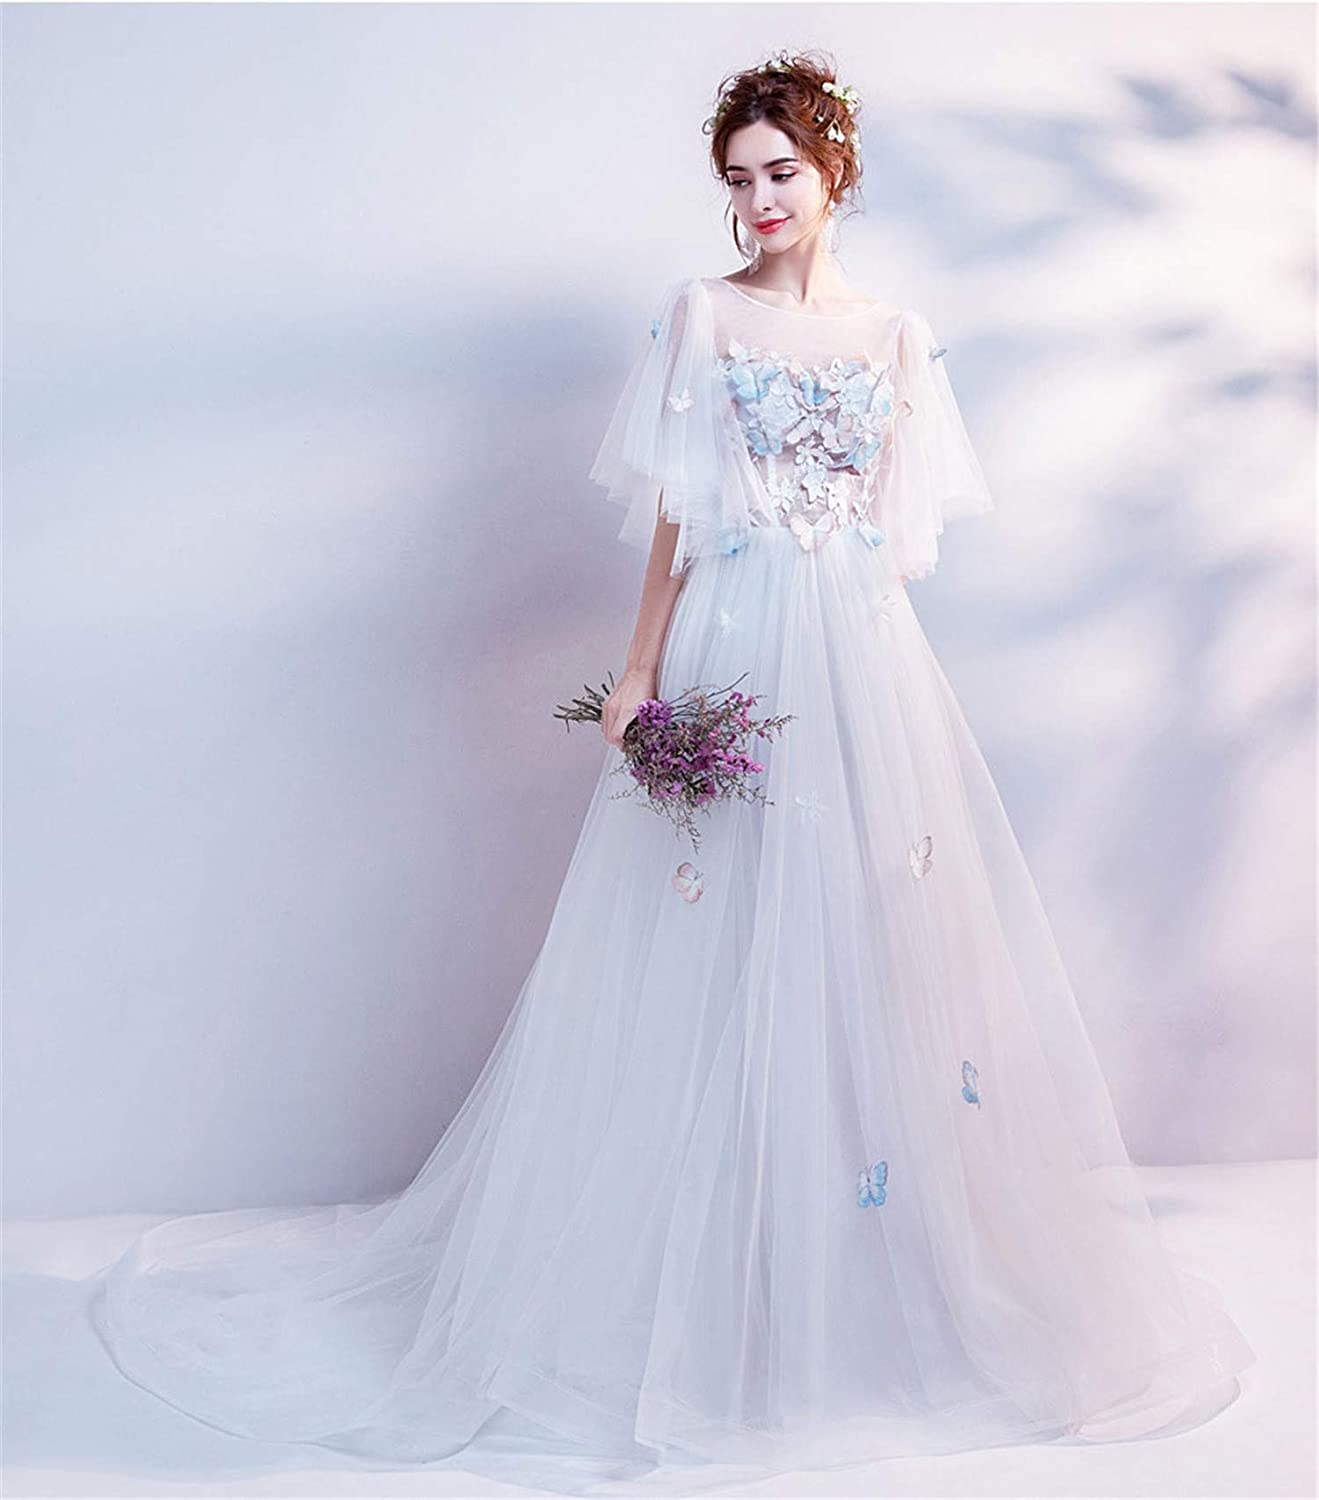 Bridal Wedding Dress Women Elegant Holiday Travel Photo Light Lawn Outdoor Seaside Beach Exterior